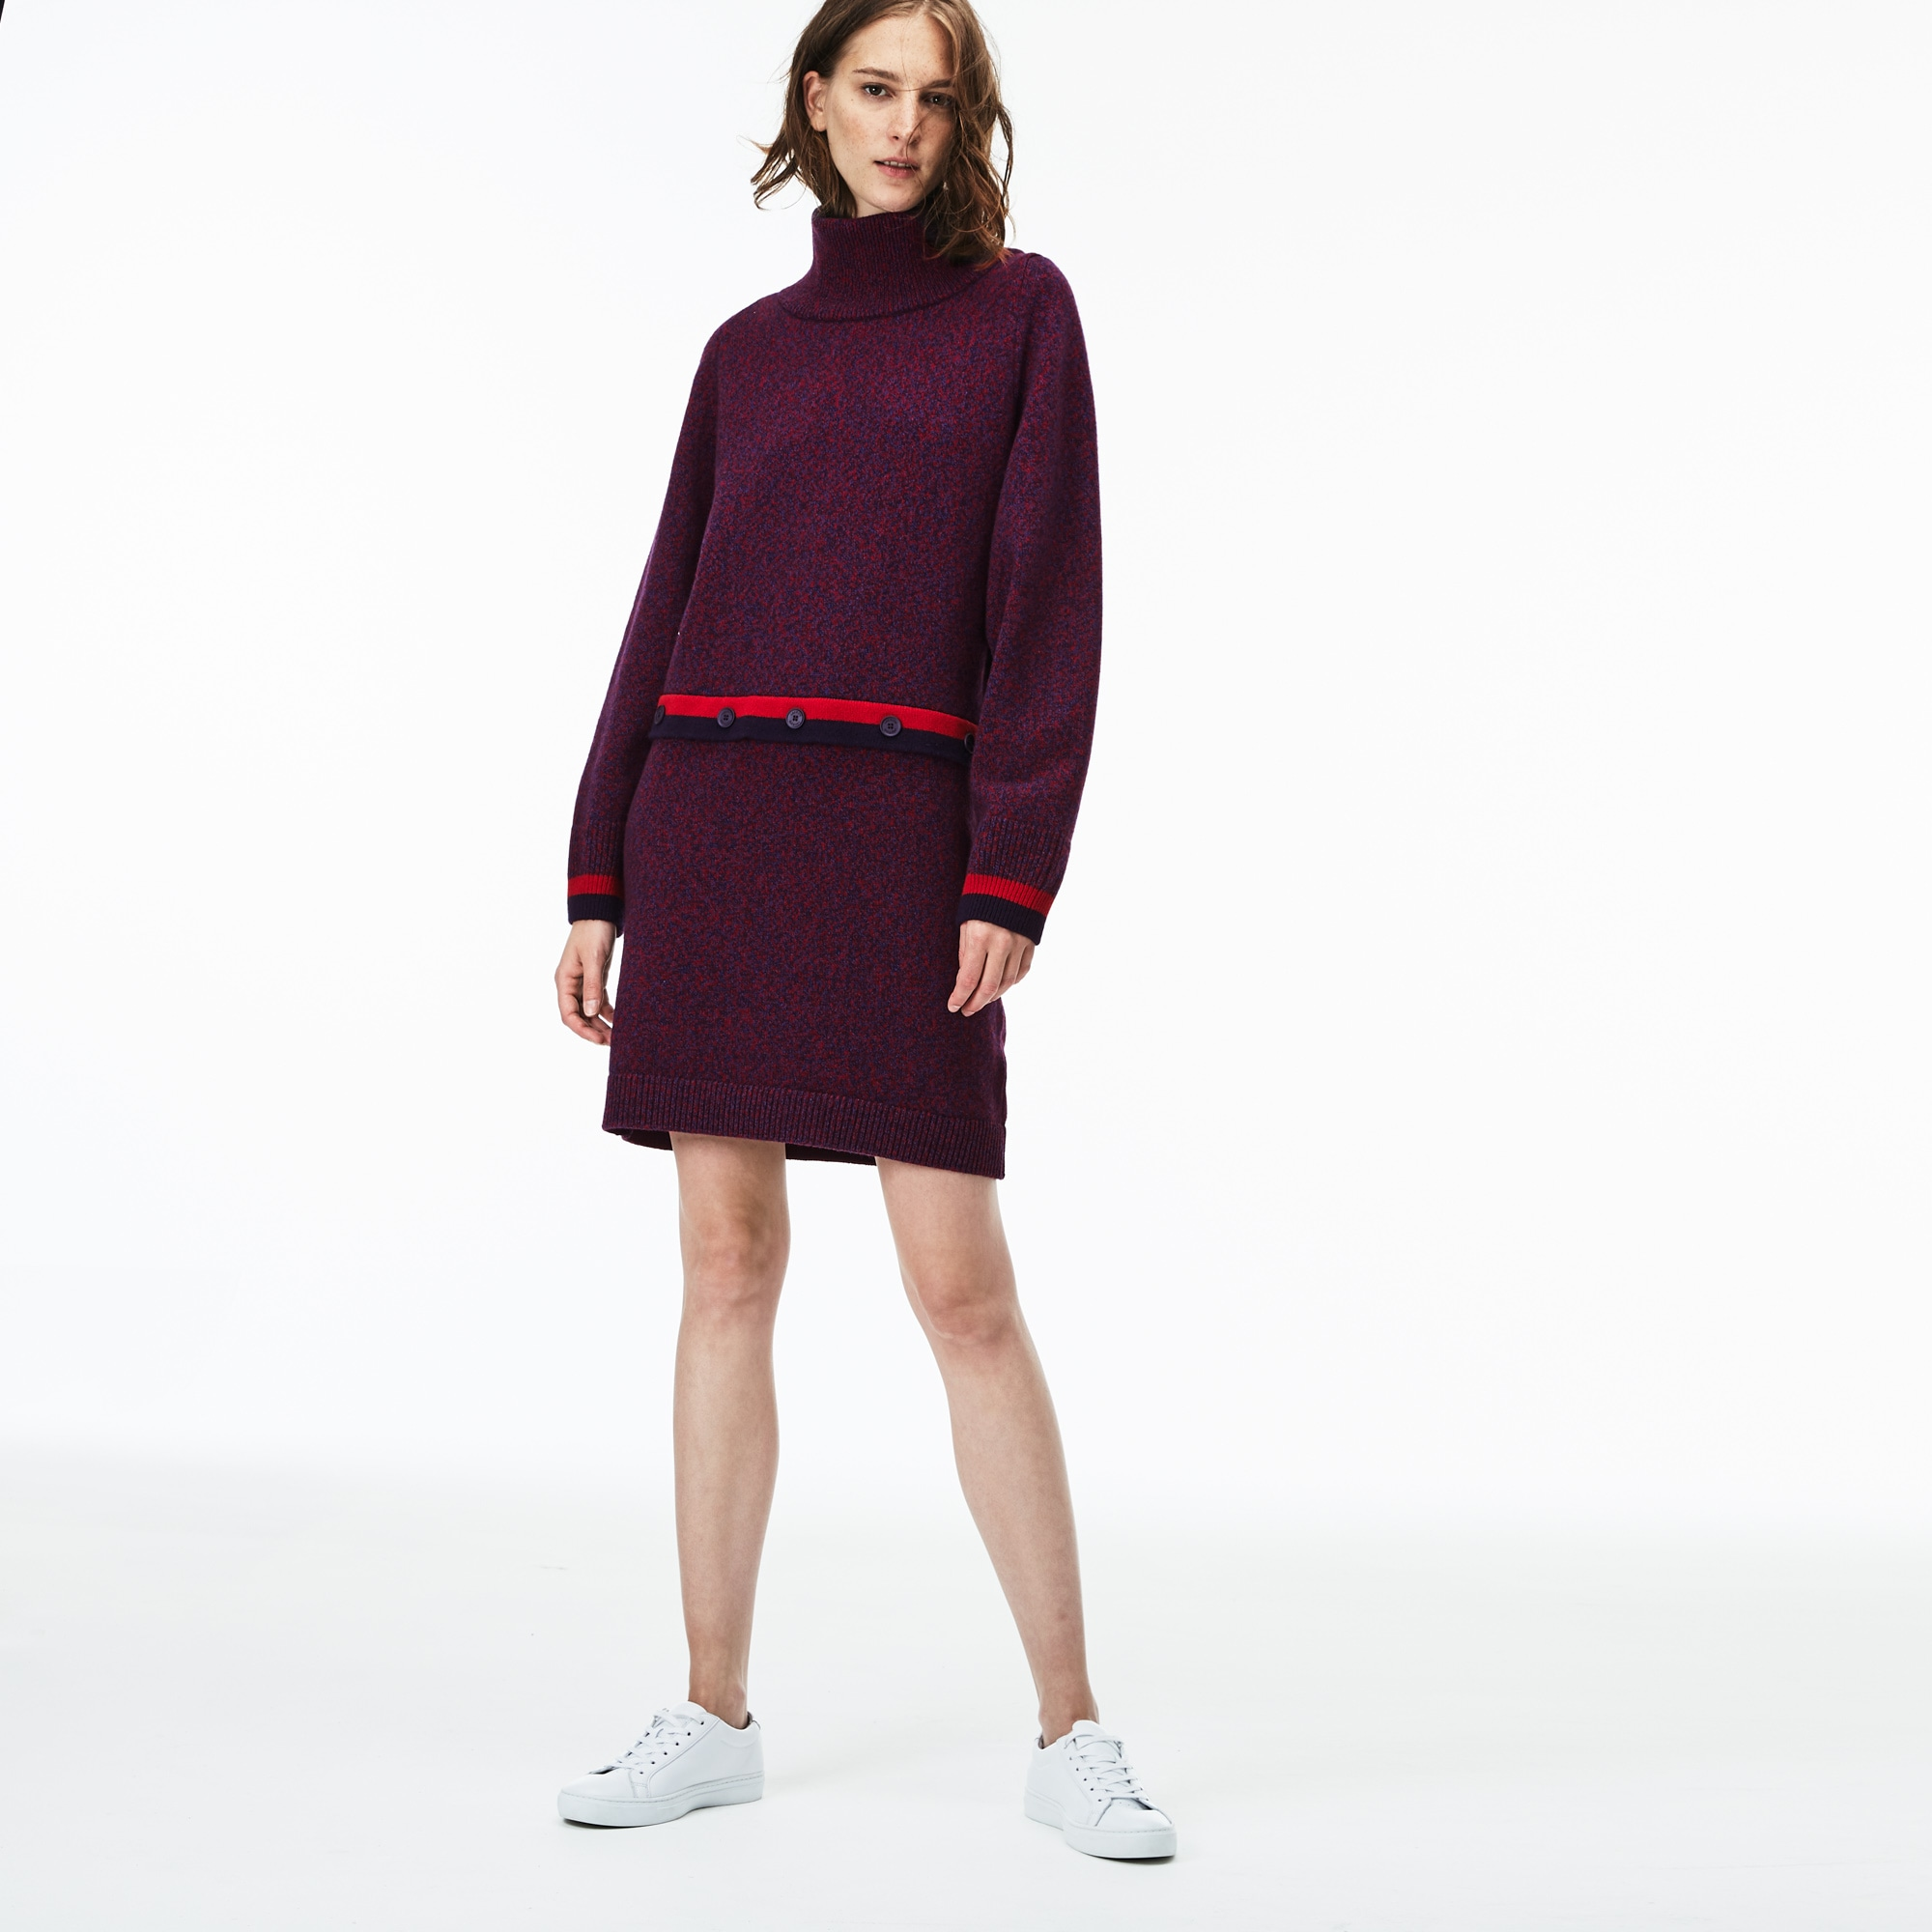 Women's Made In France Contrast Accents Jersey Sweater Dress